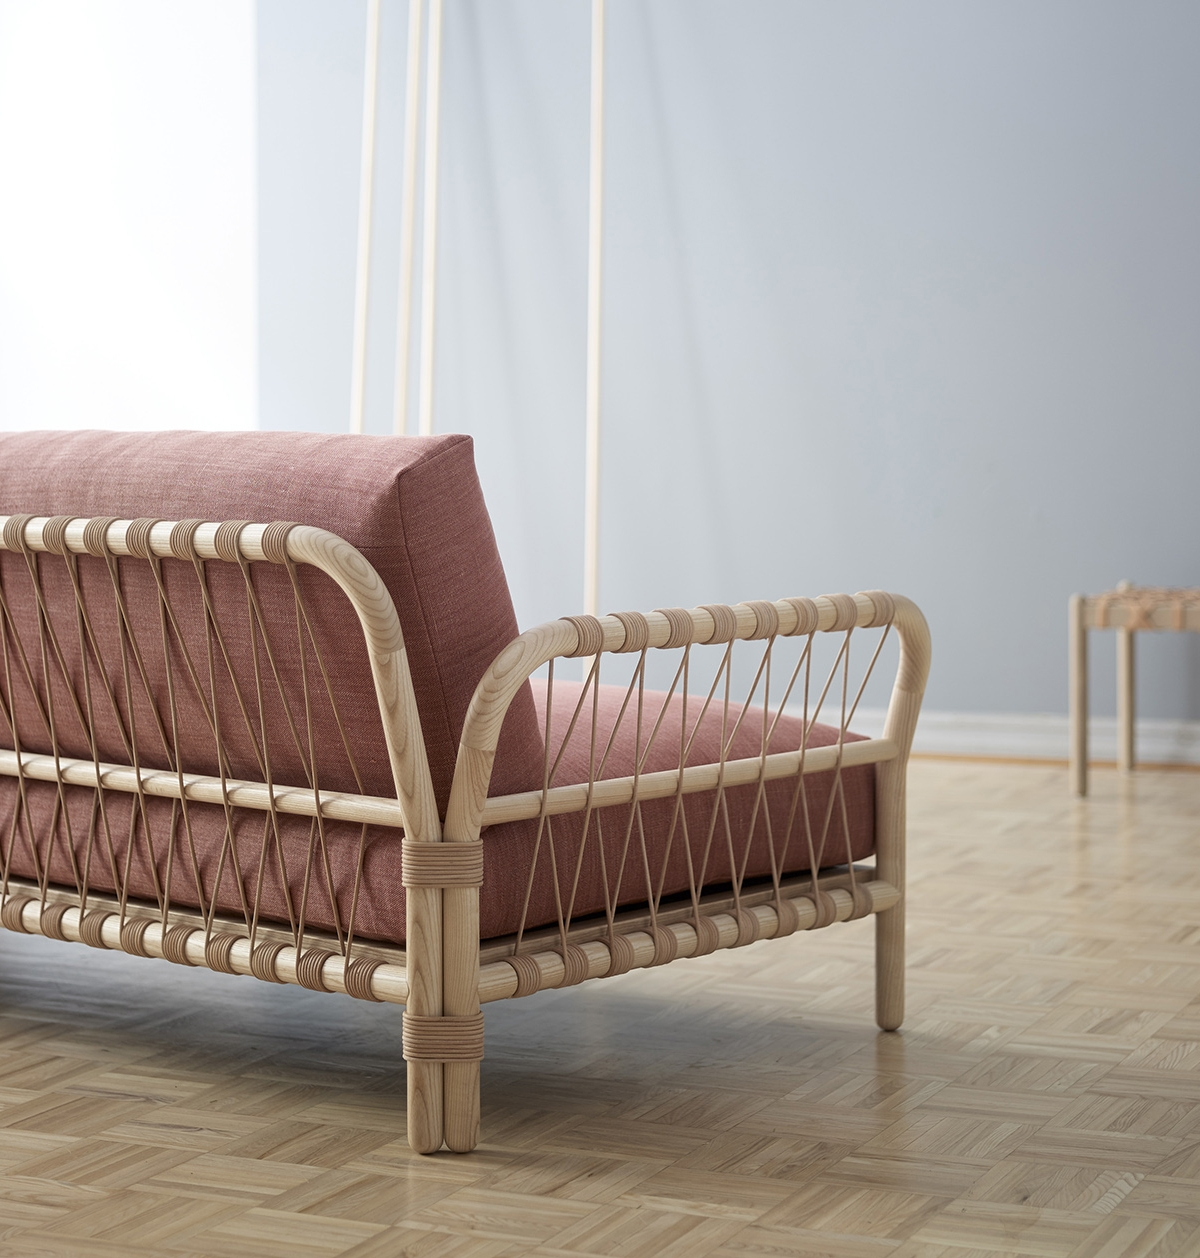 Alexander Lervik's extravaganza of materiality the 'Harper' sofa, combines woven leather cord and turned and bent ash wood.